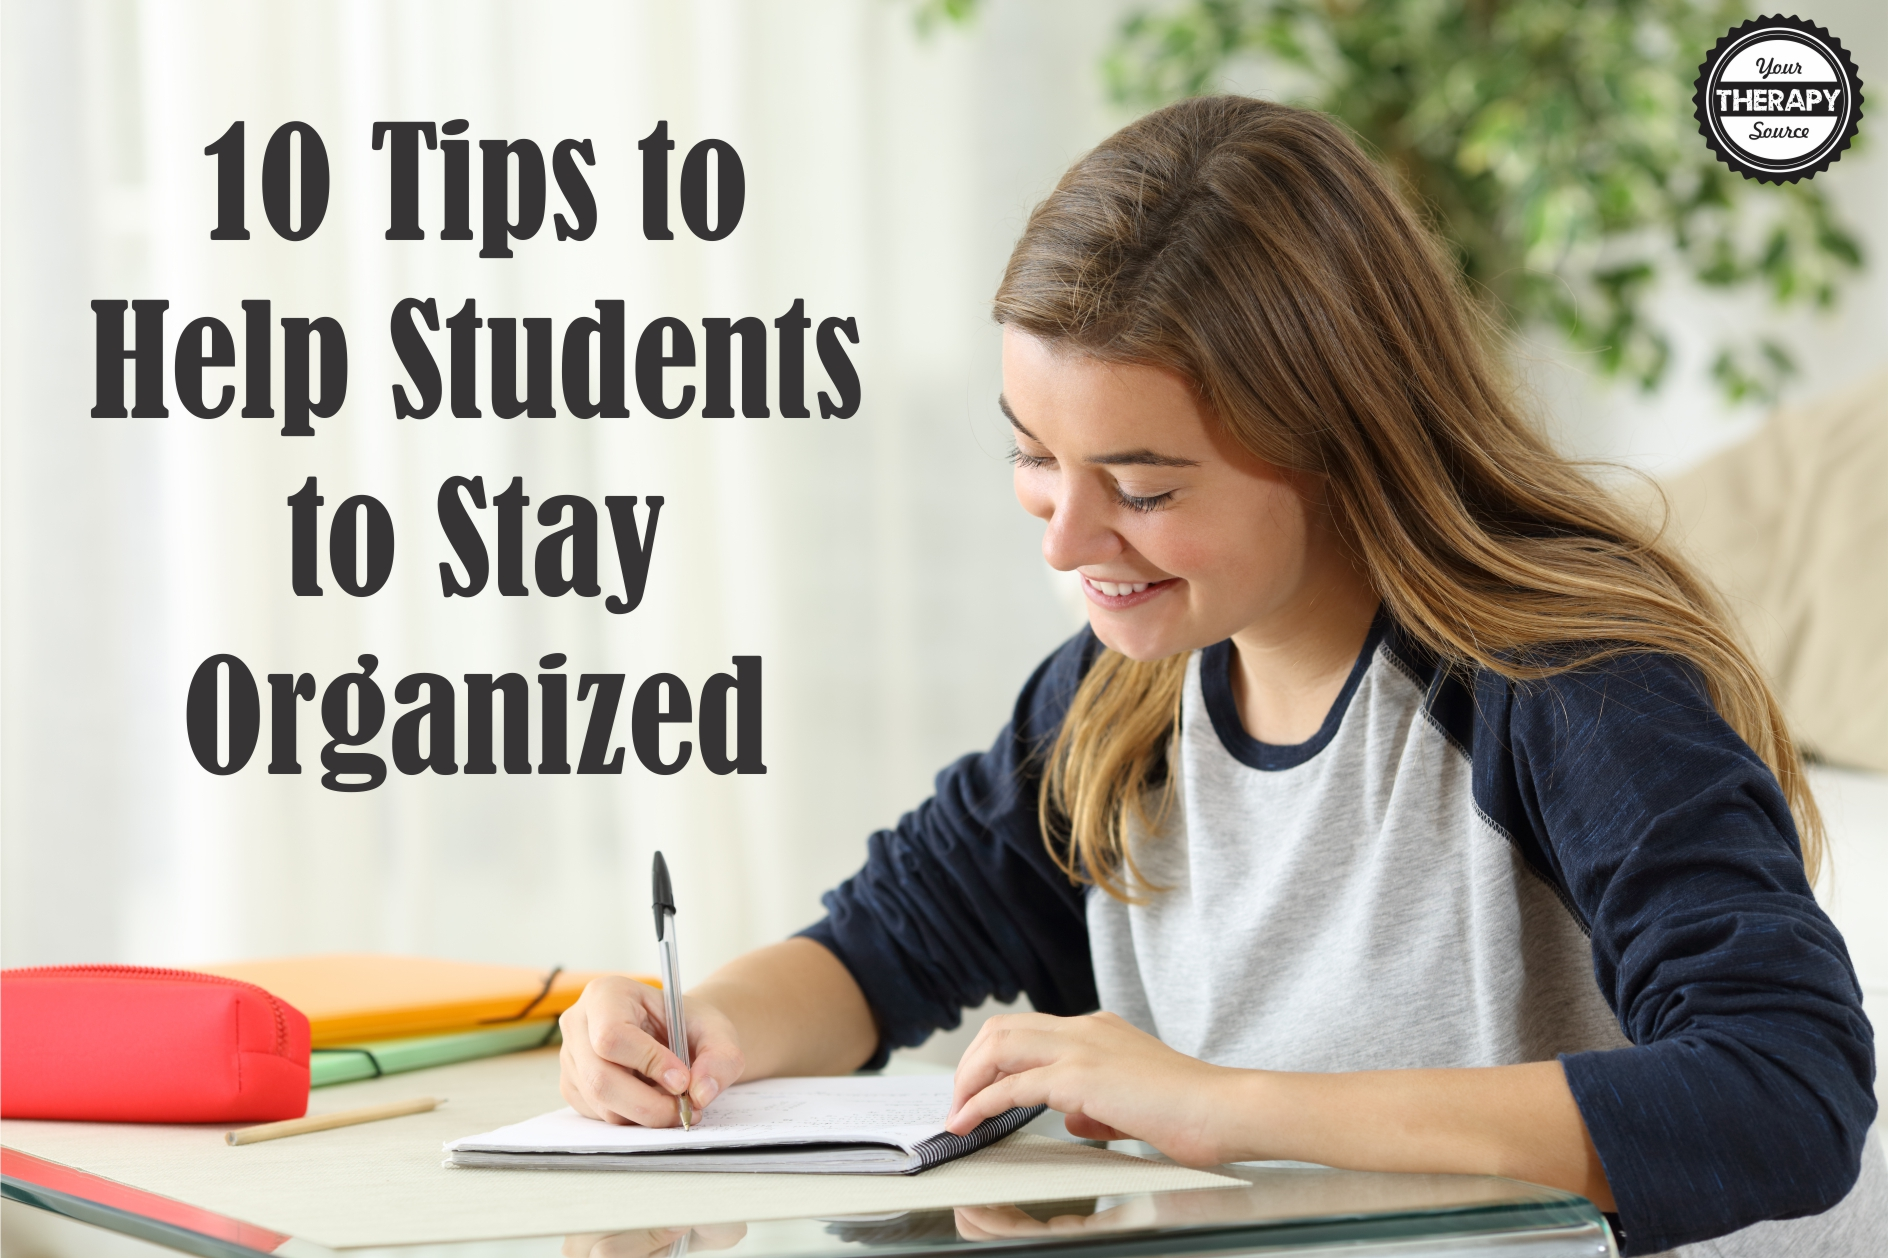 10 tips to help students to stay organized your therapy source